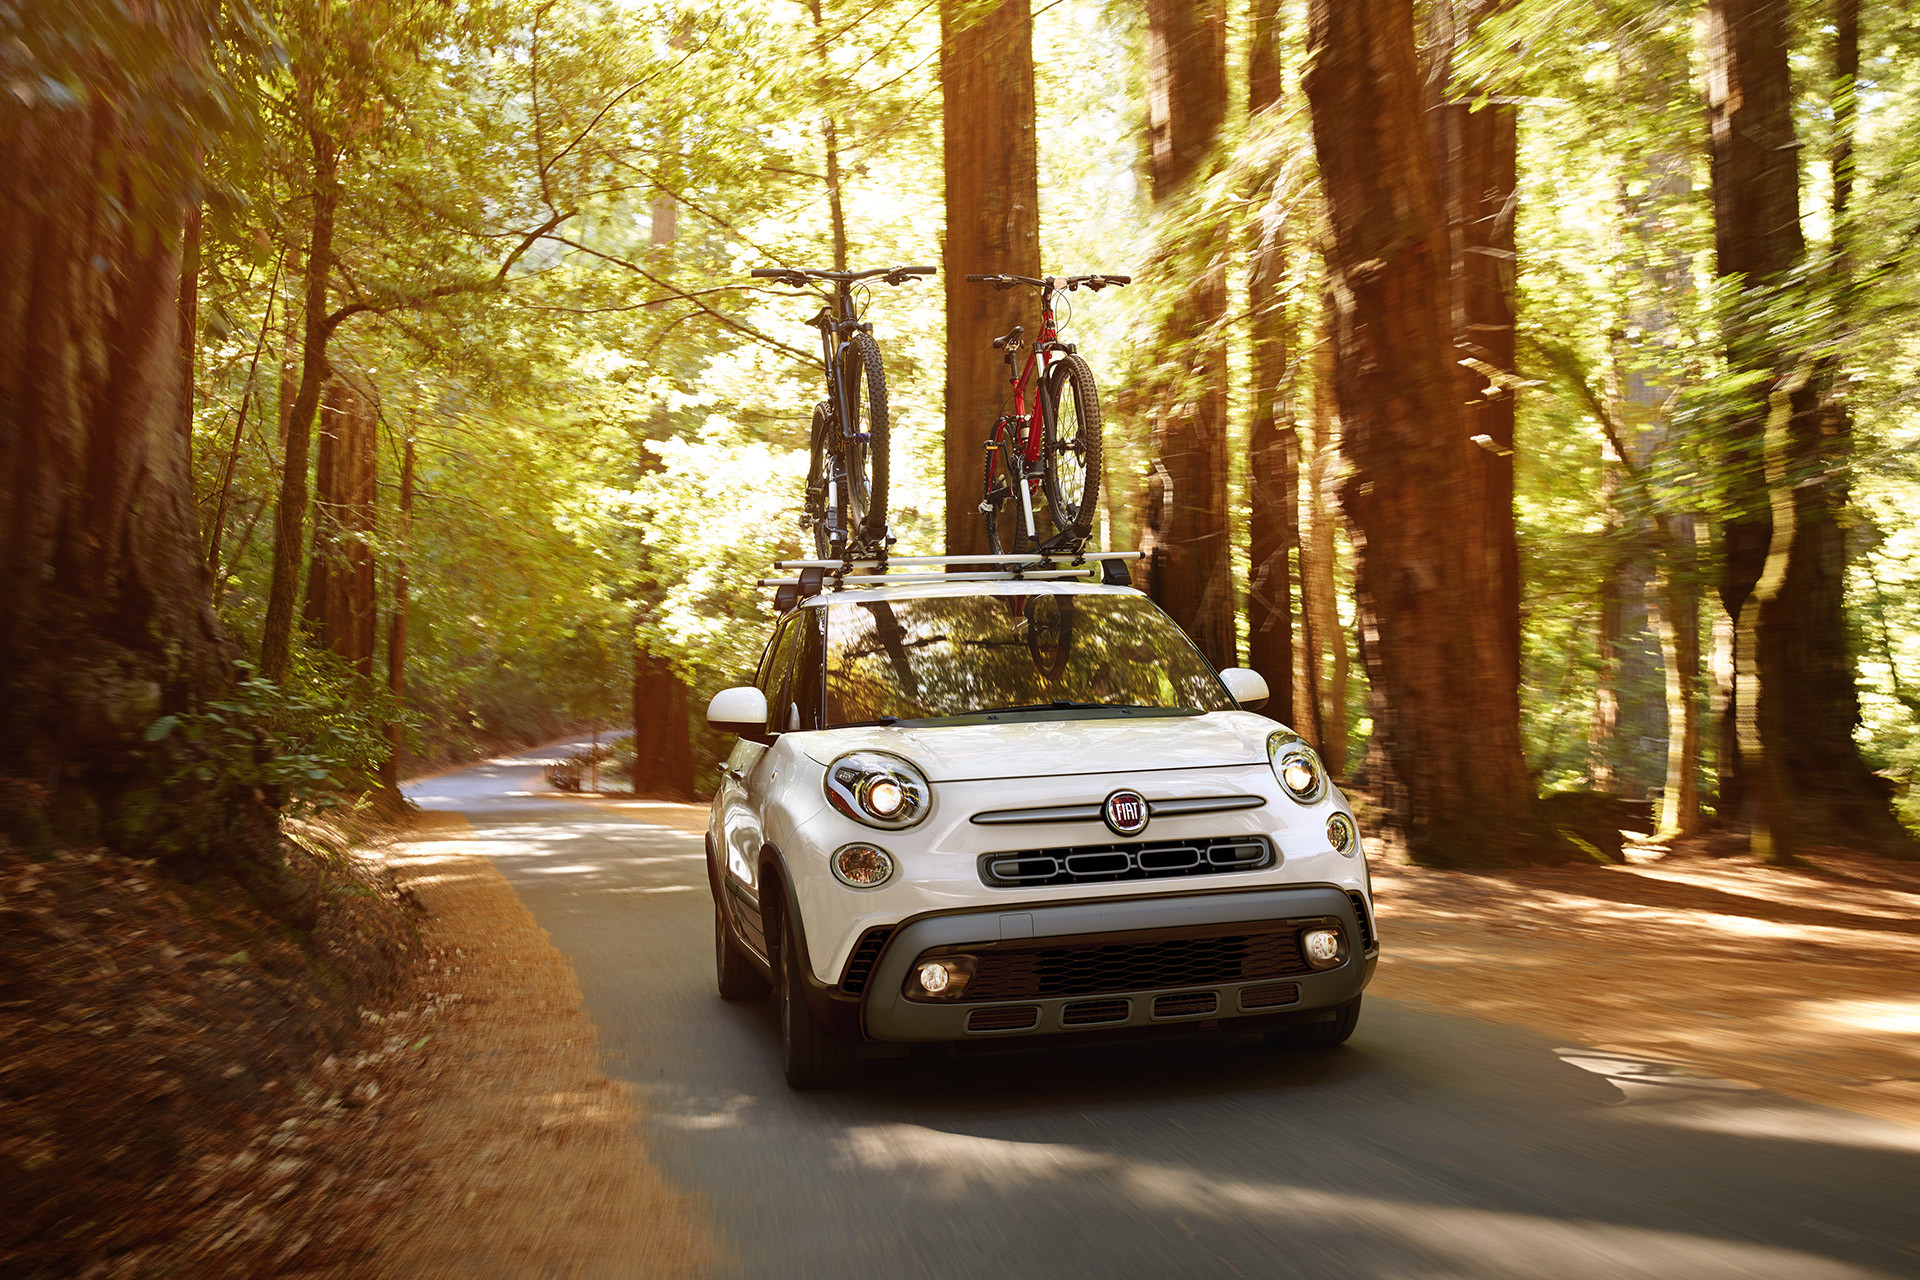 2019 Fiat 500L front view driving down country road, shown in white